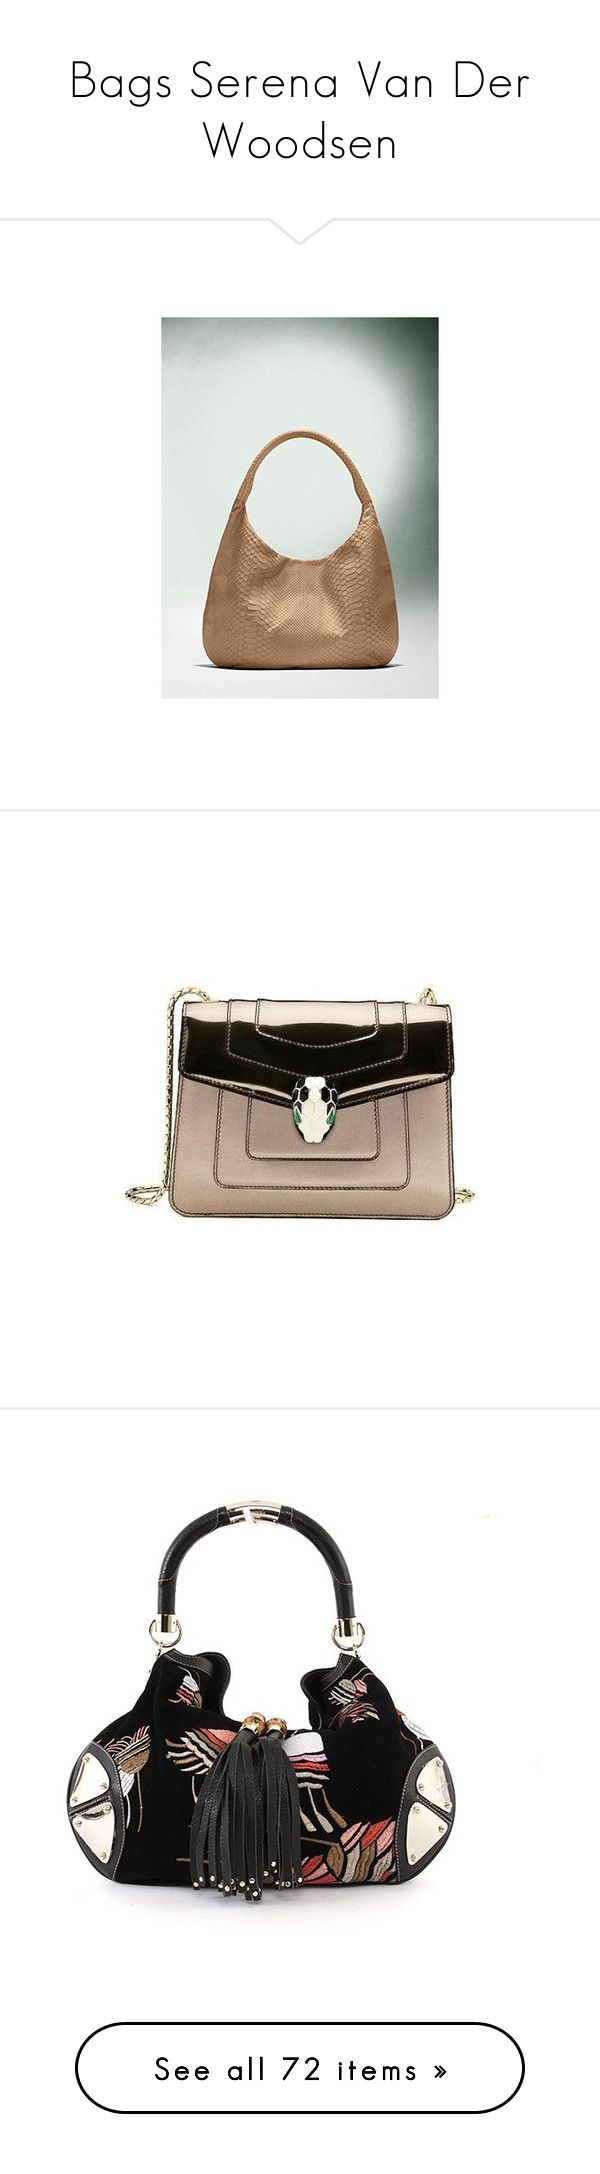 """""""Bags Serena Van Der Woodsen"""" by taught-to-fly19 ❤ liked on Polyvore featuring bags, handbags, shoulder bags, devi kroell handbags, hobo shoulder bags, snake print handbags, hobo handbags, python handbags, bolsas de lado and tassel bags"""